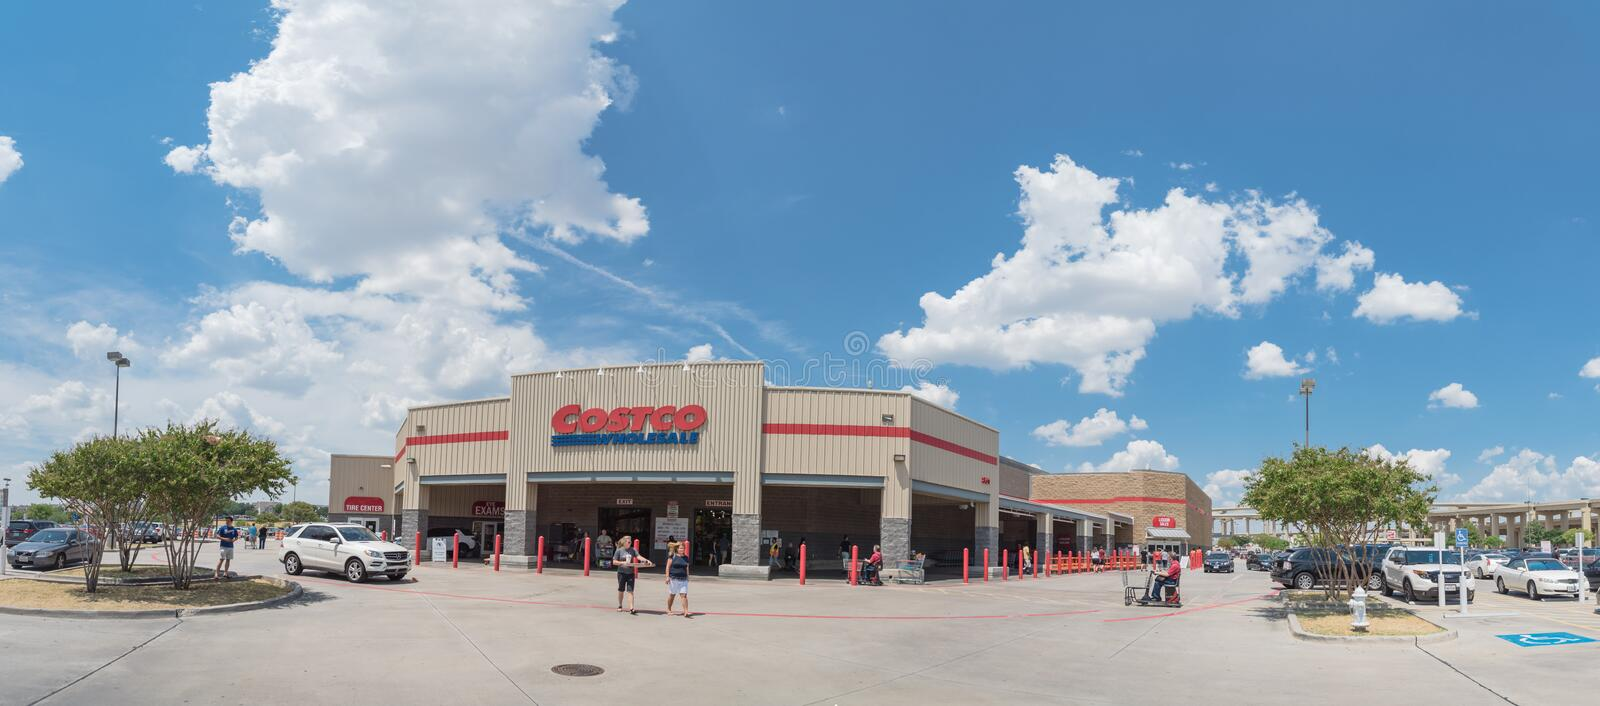 Panorama view entrance to Costco Wholesale store in Lewisville,. Lewisville, TX, USA-AUG 4, 2018:Panorama entrance Costco Wholesale storefront and liquor store stock image